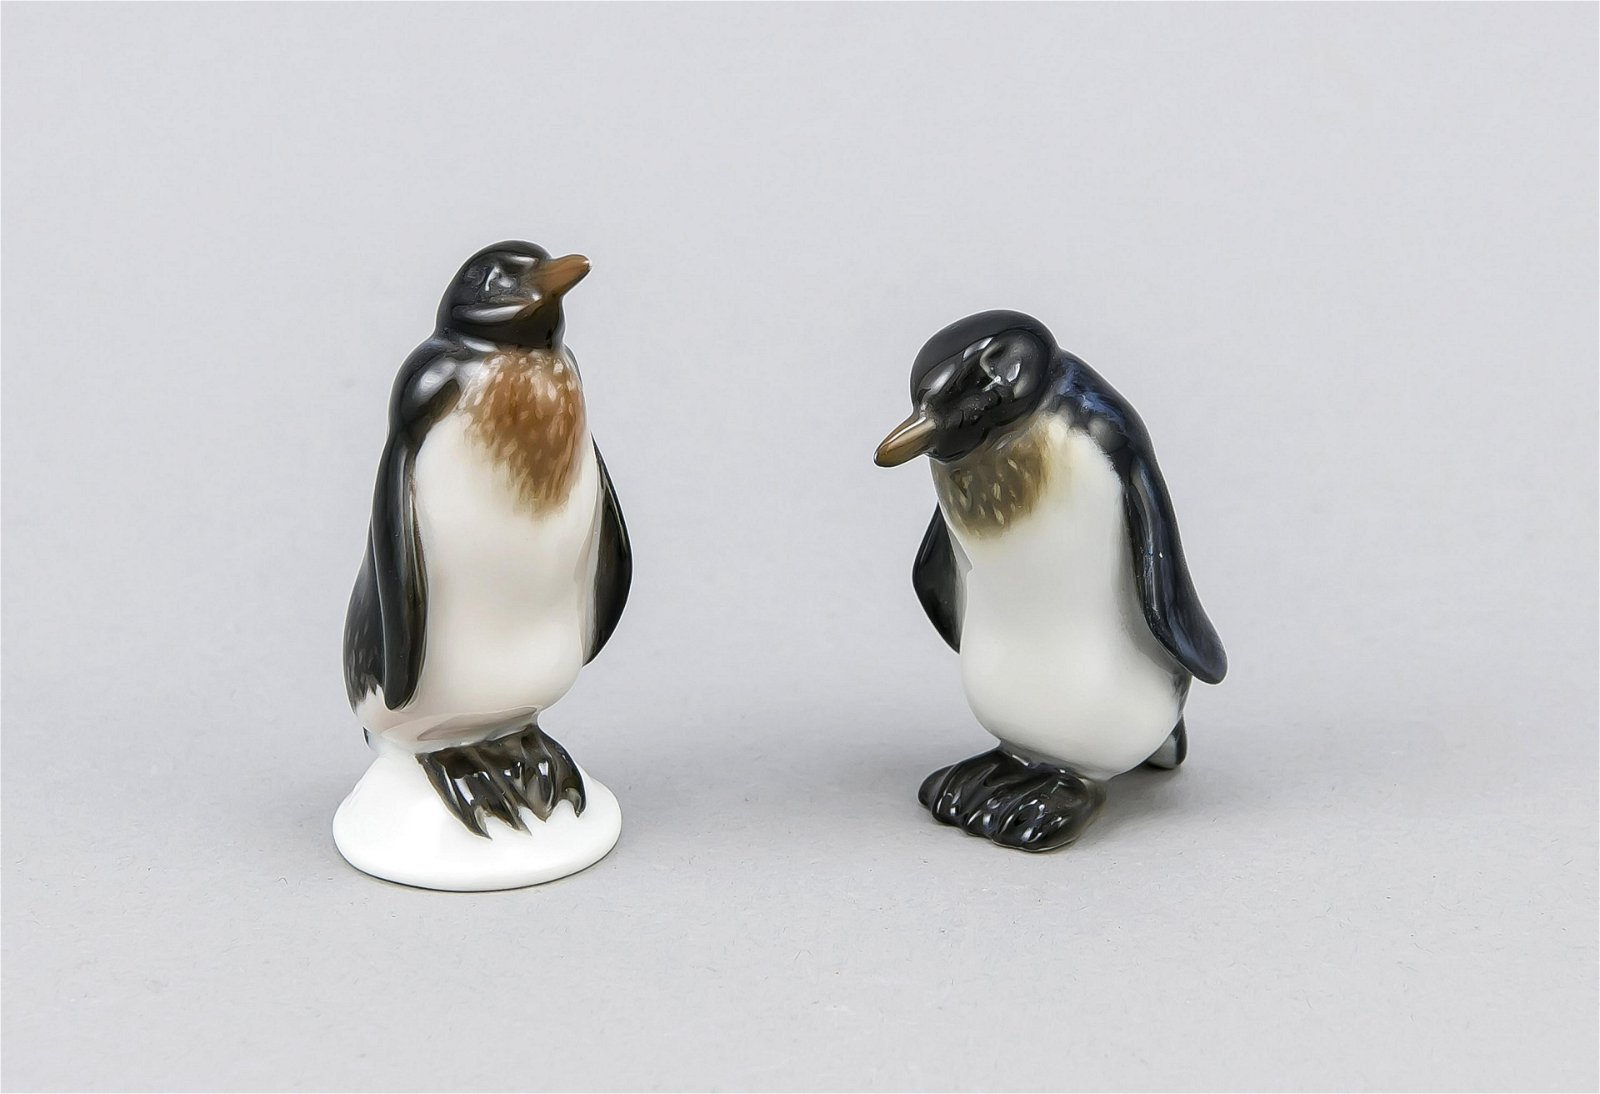 Two penguins, Rosenthal, Selb, mid-20th century